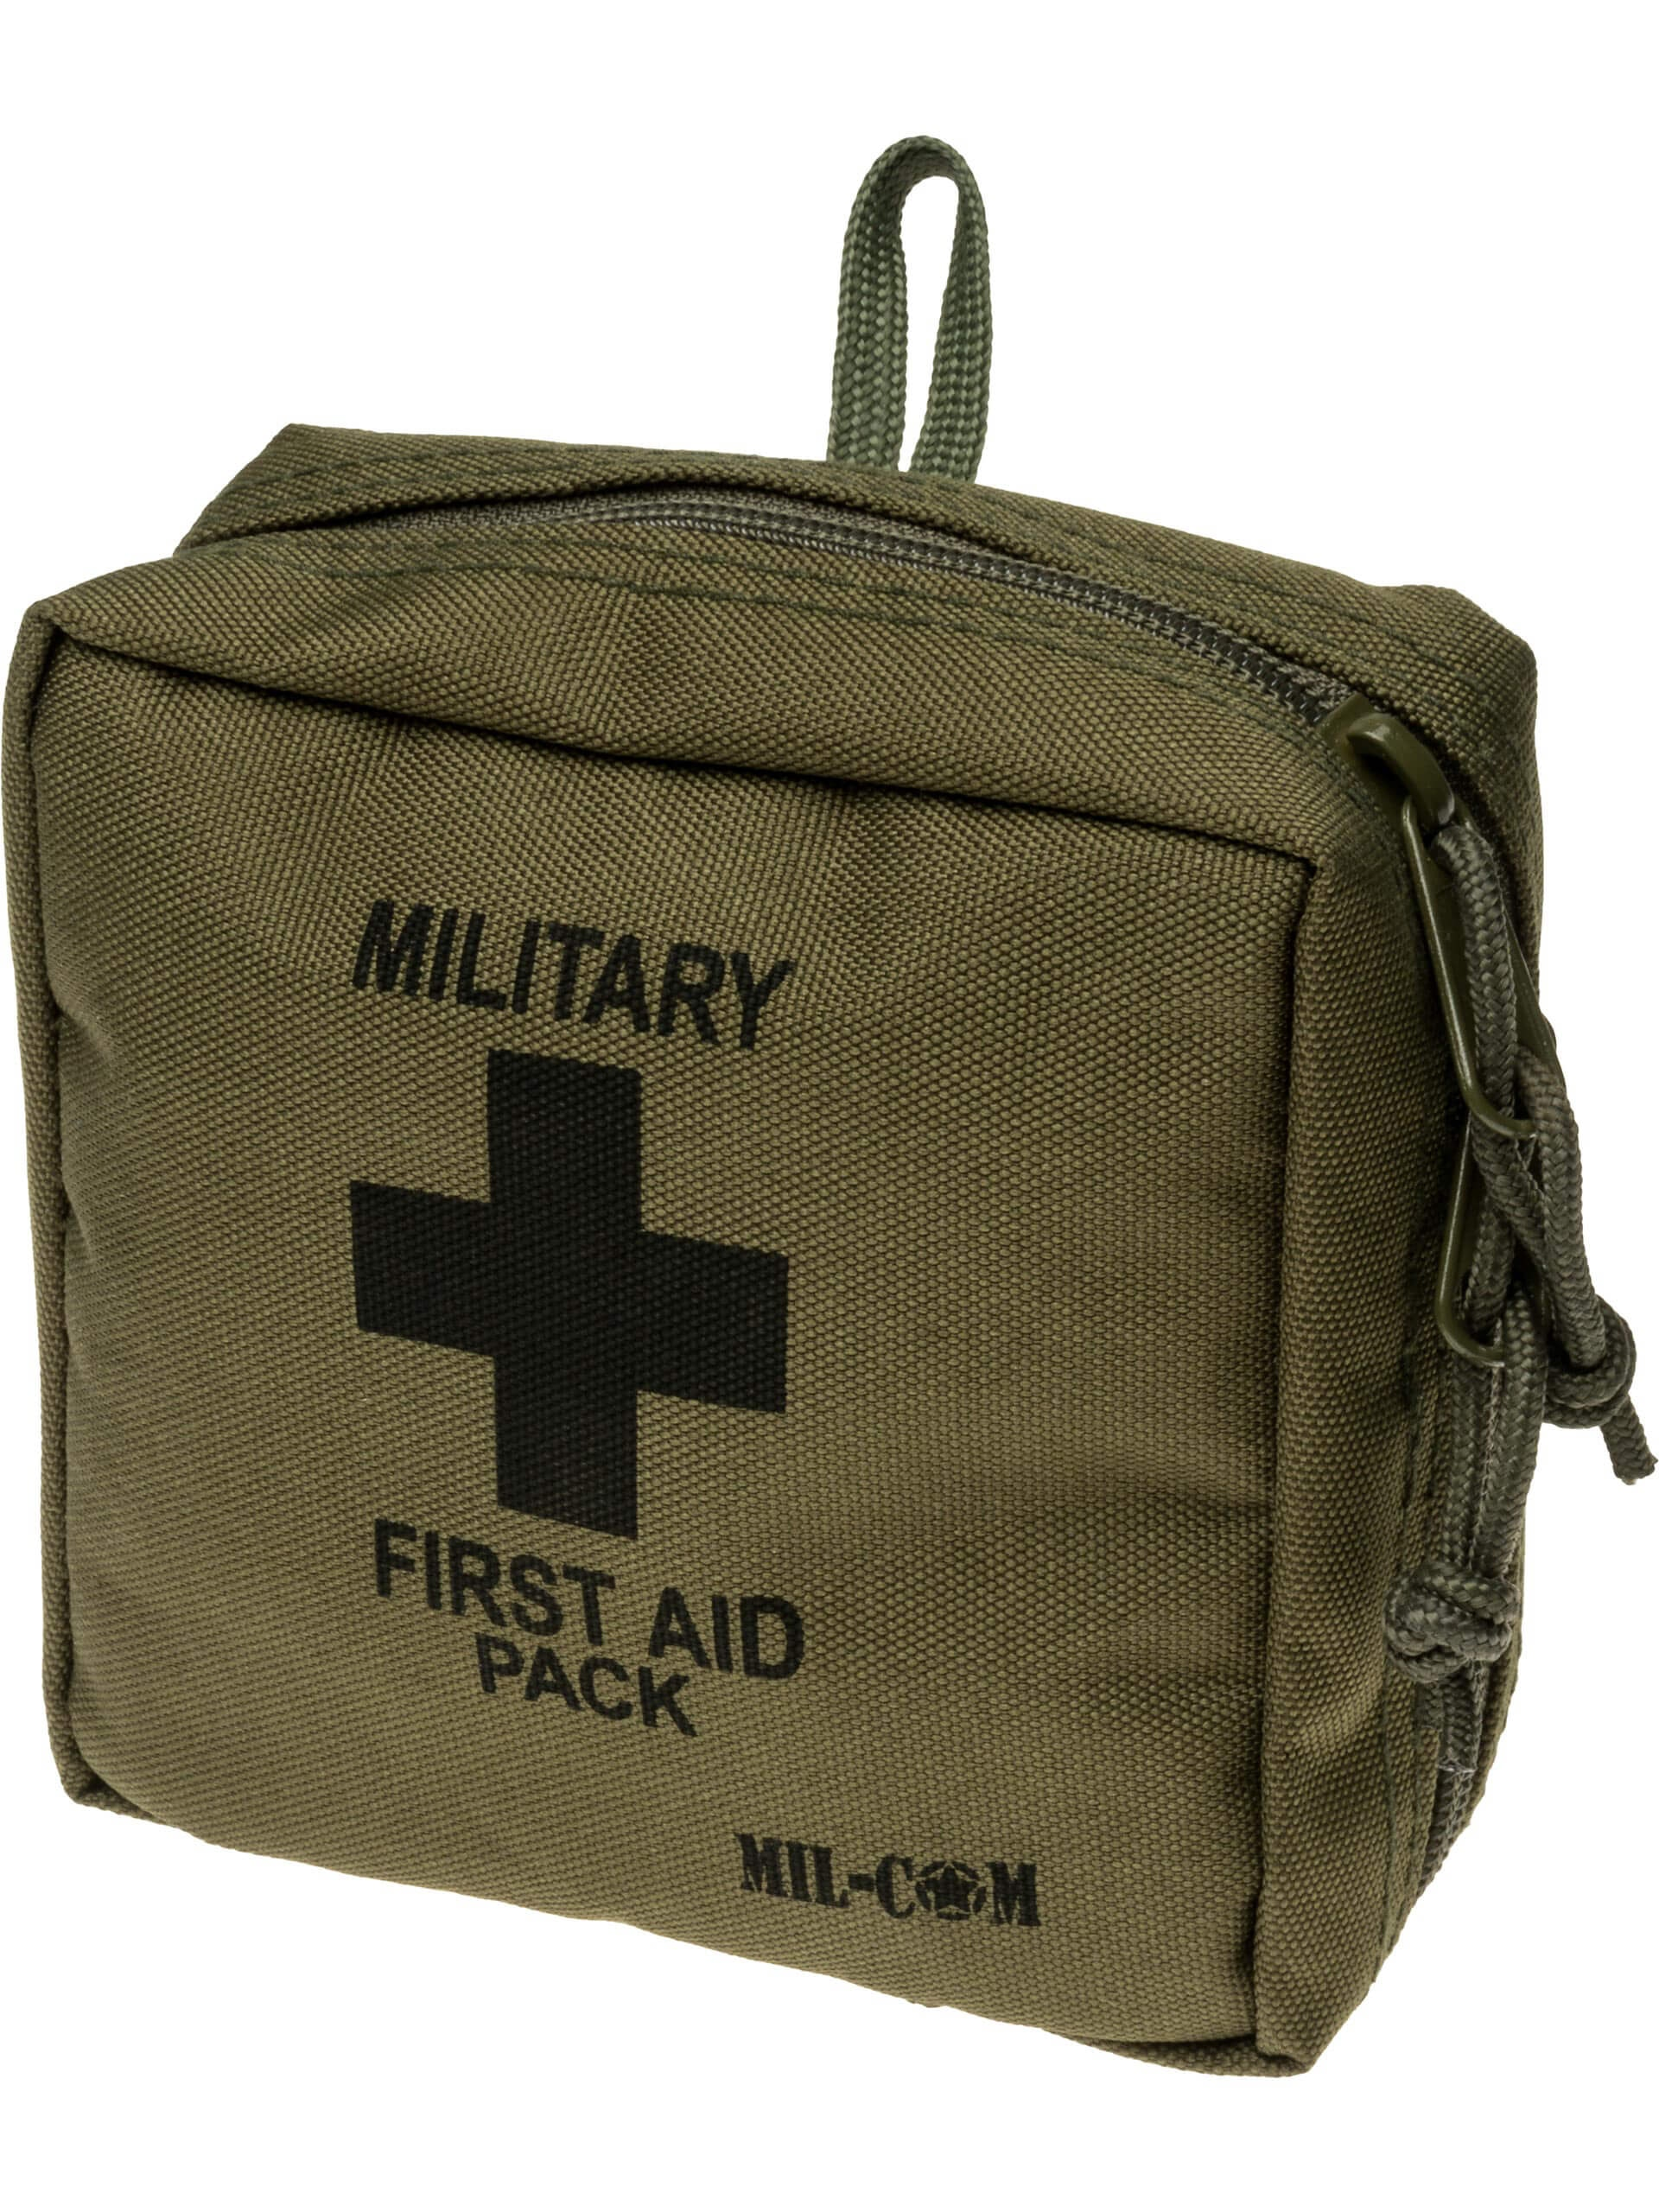 MIL-COM Military First Aid Kit Pouch